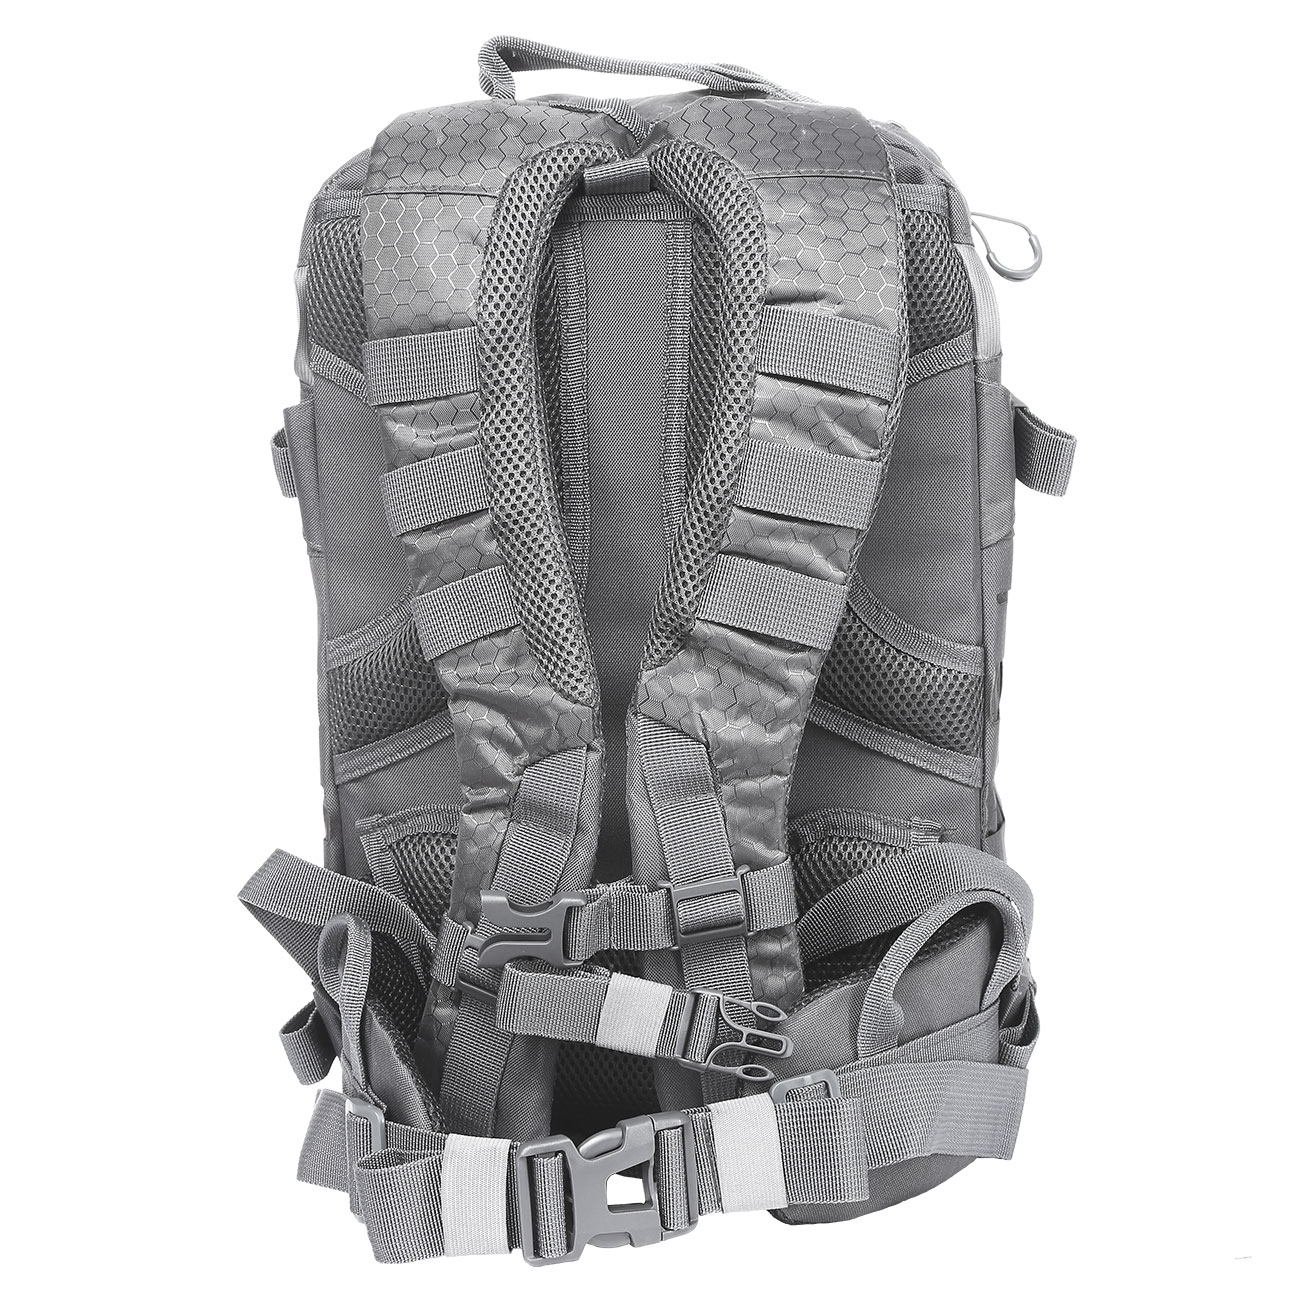 MFH Rucksack Operation I 30 Liter urban grau 2